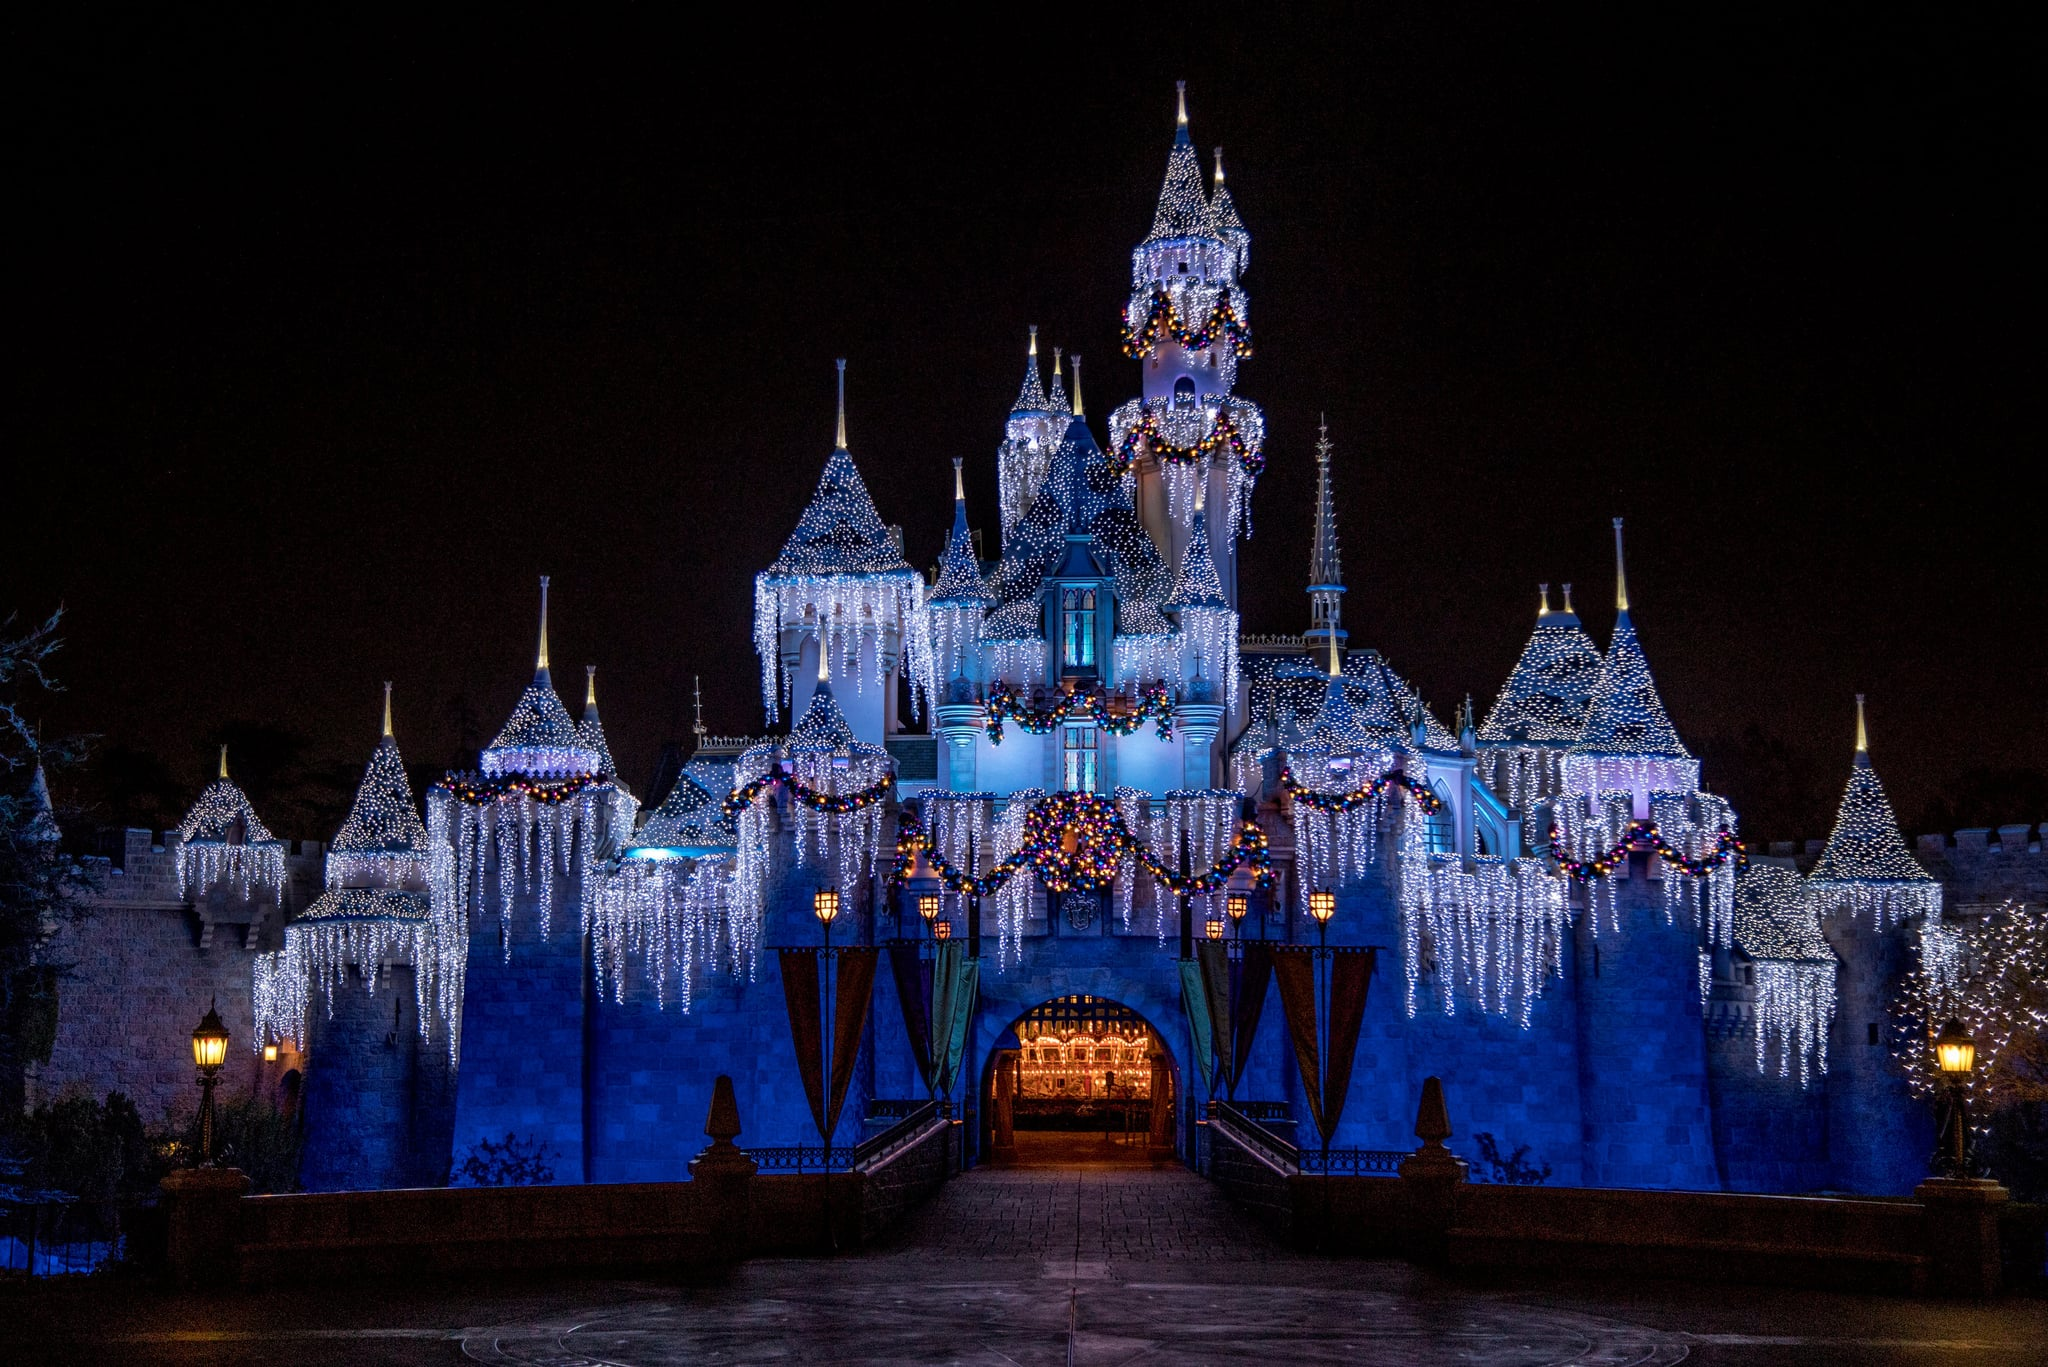 The Disneyland Resort will once again transform into a merry and magical place as guests return to enjoy their holiday season from Nov. 12, 2021, through Jan. 9, 2022. Many beloved traditions return providing cheerful entertainment, yuletide treats, specialty merchandise, sparkling dcor and seasonal transformations of select attractions. (Disneyland Resort)